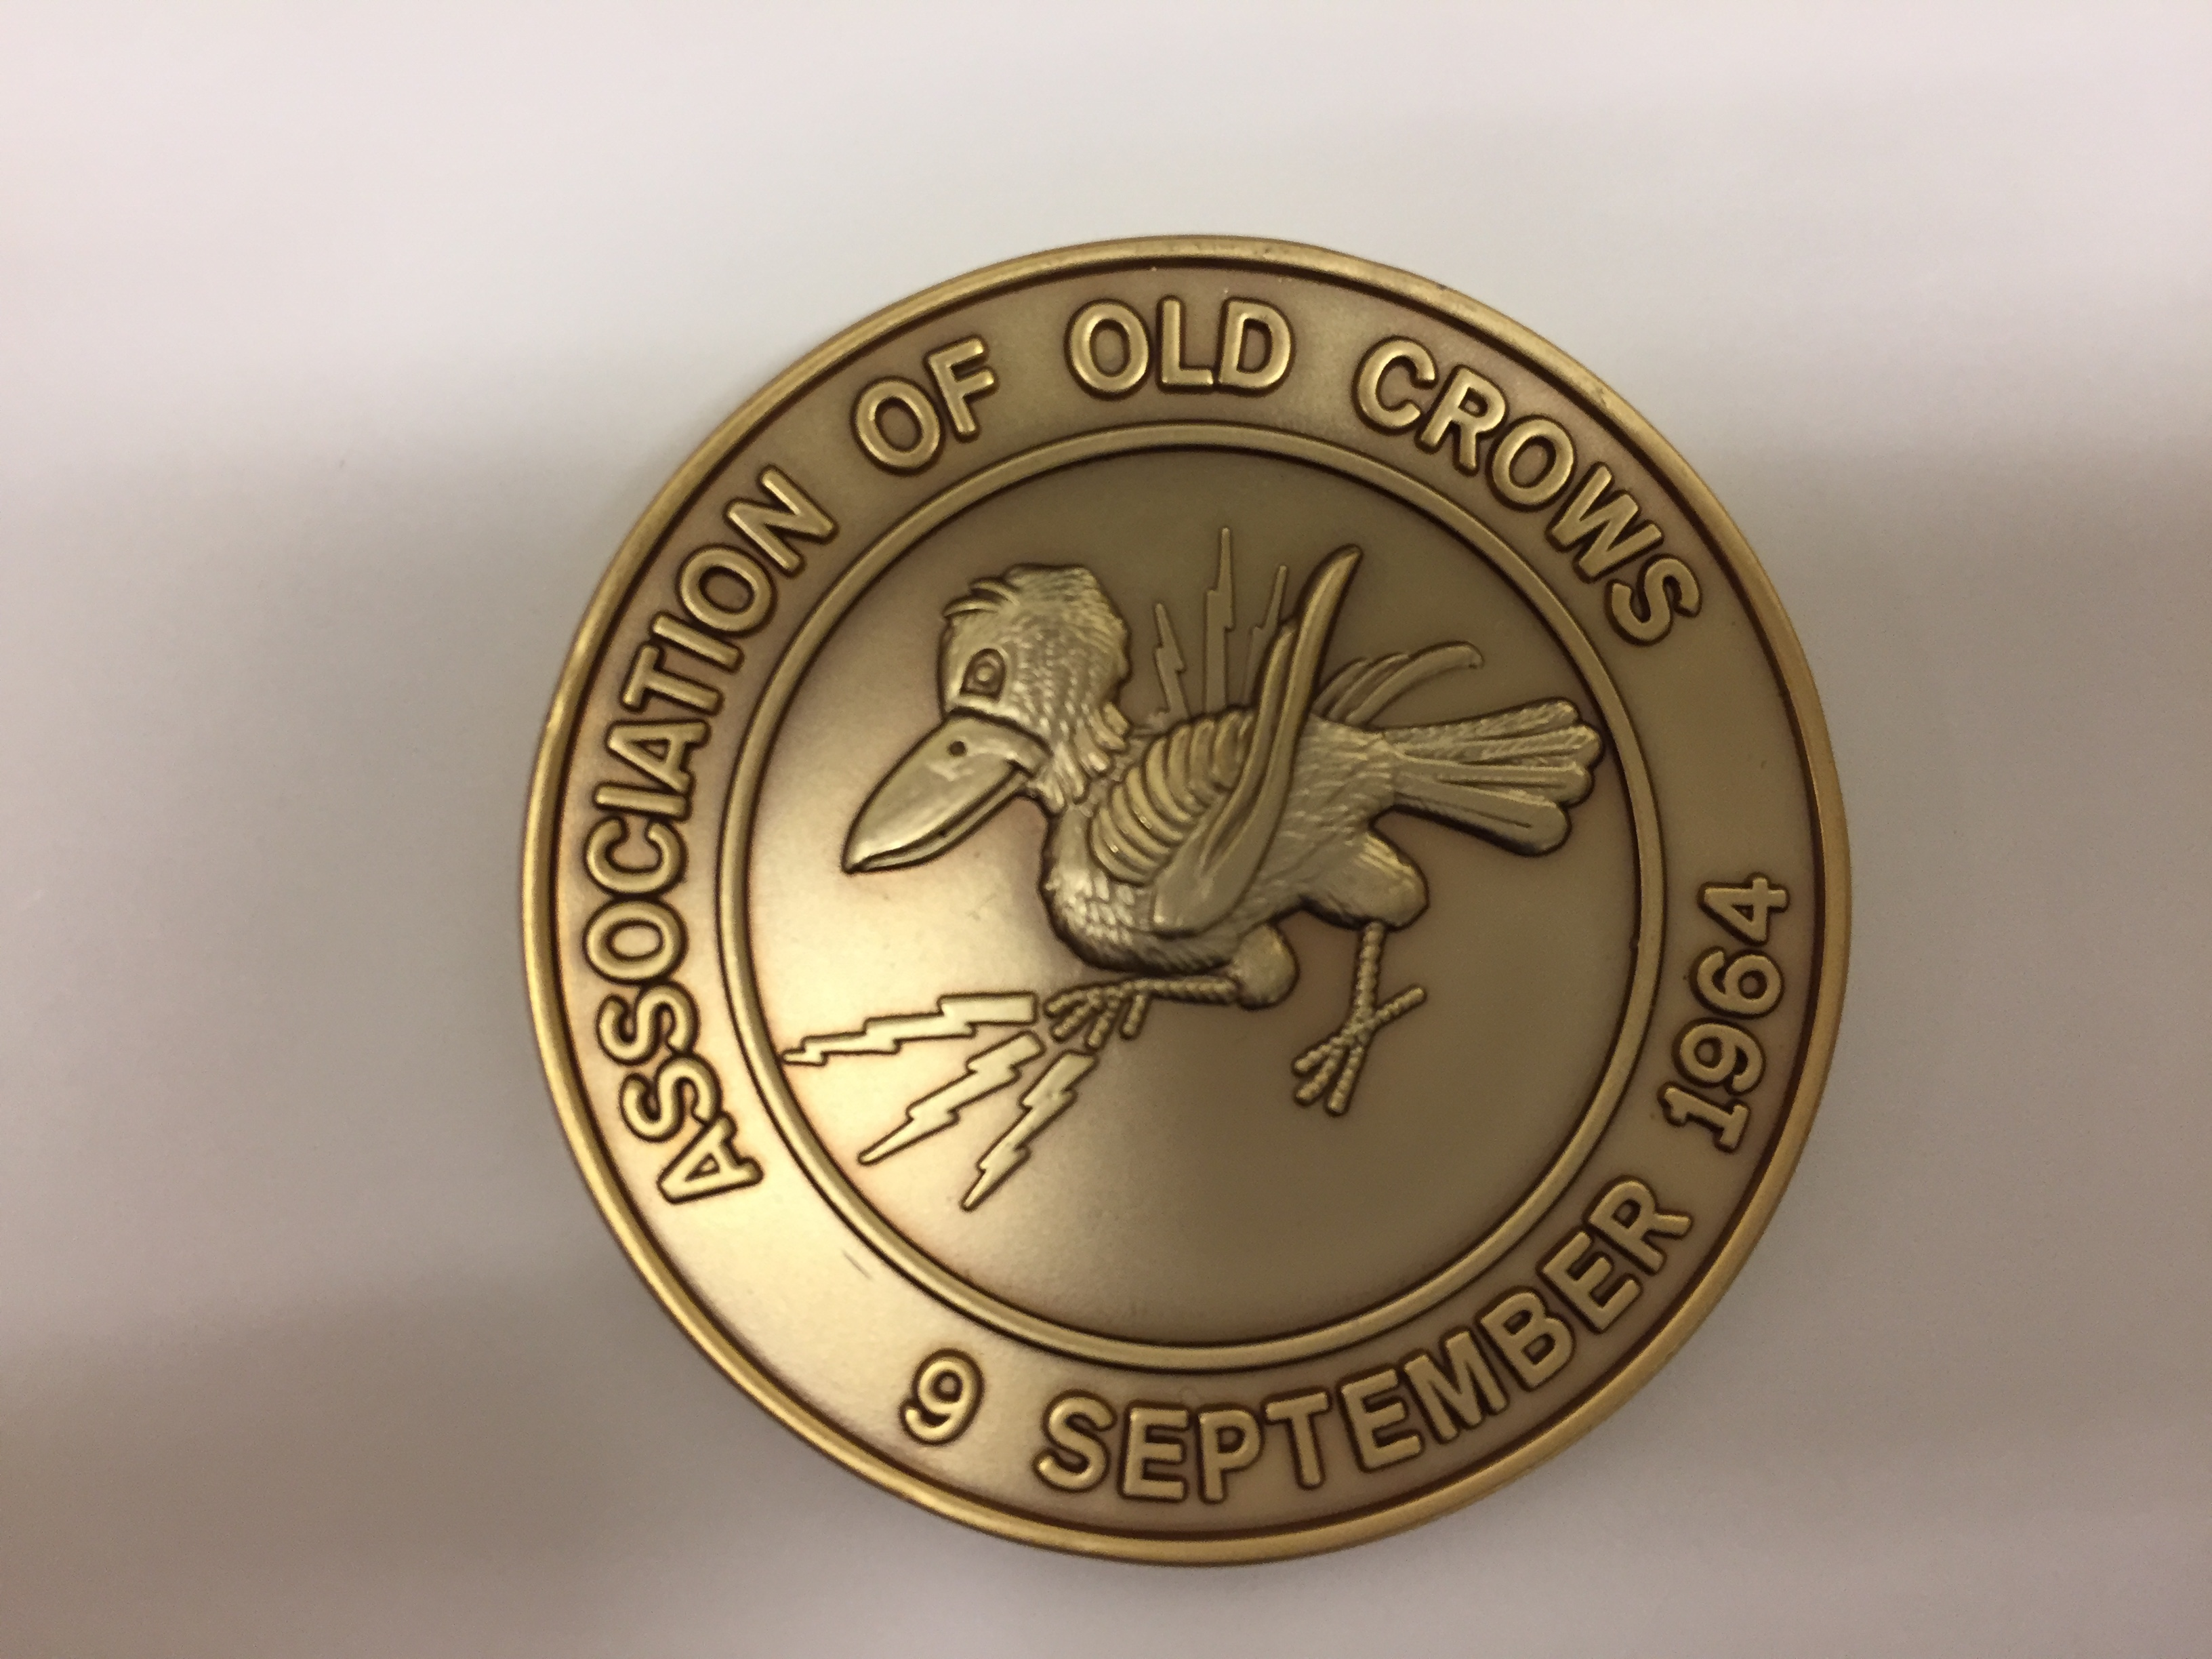 Association of Old Crows